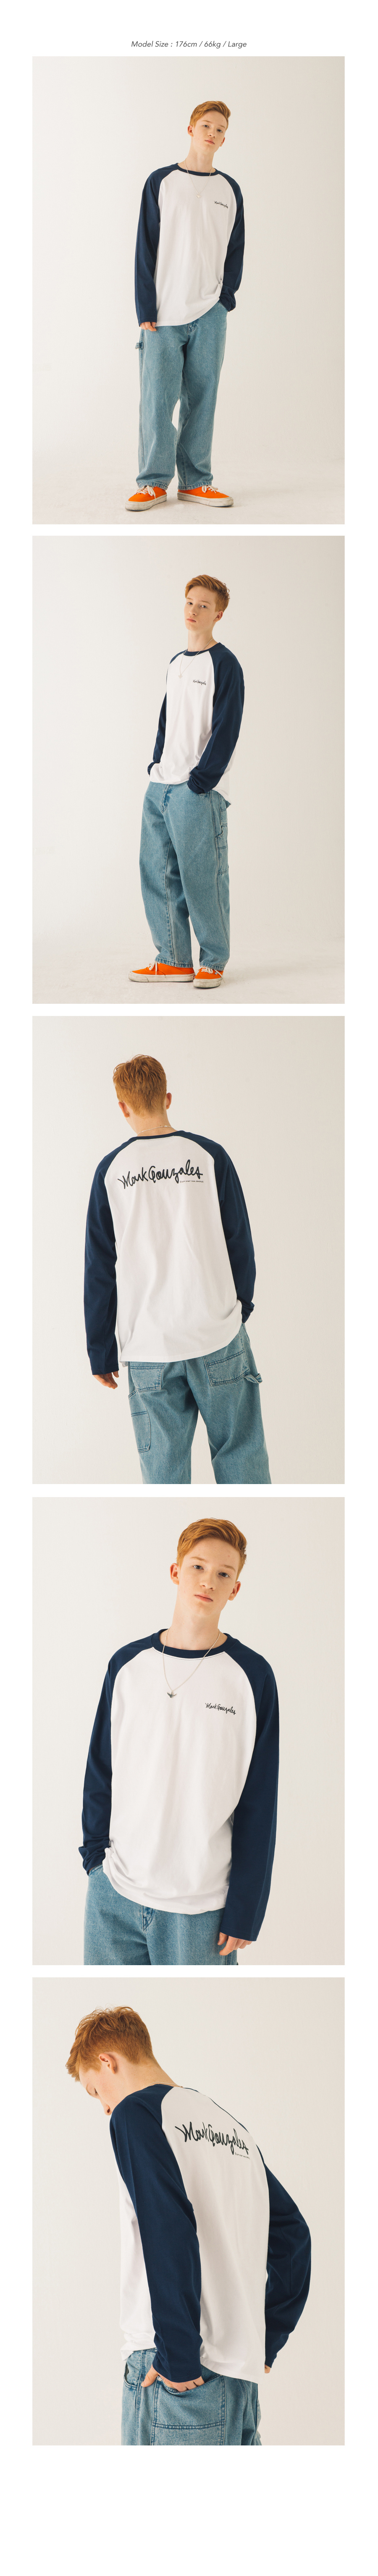 마크 곤잘레스(MARK GONZALES) M/G SIGN LOGO RAGLAN TEE BLACK